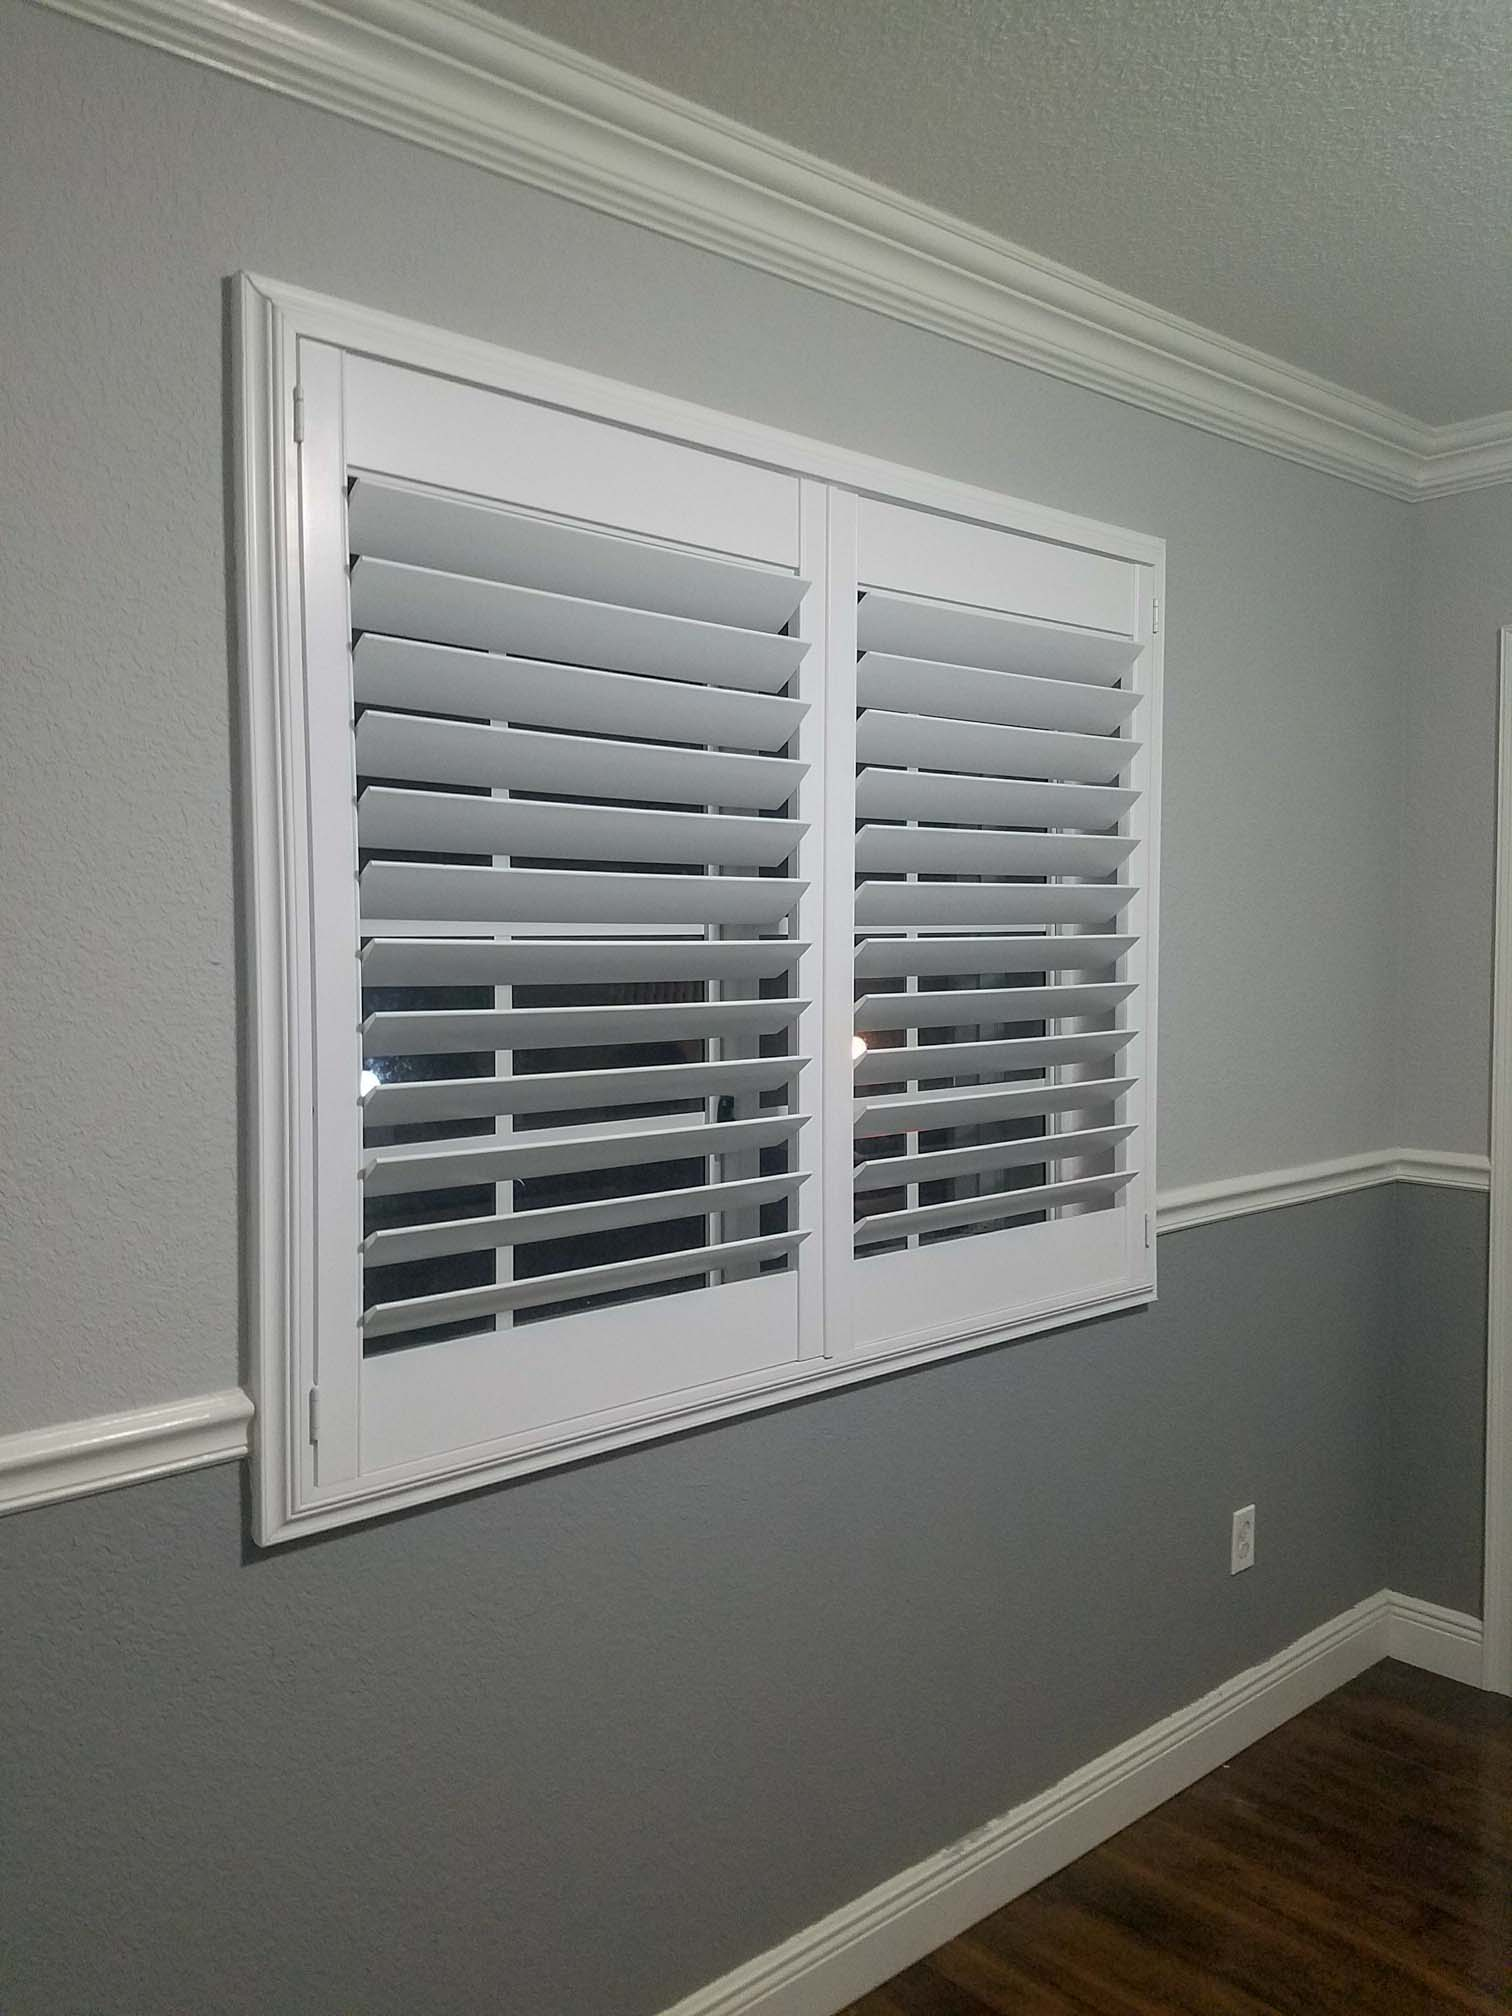 plantation shutters gallery PLANTATION SHUTTERS GALLERY 20180304 204425